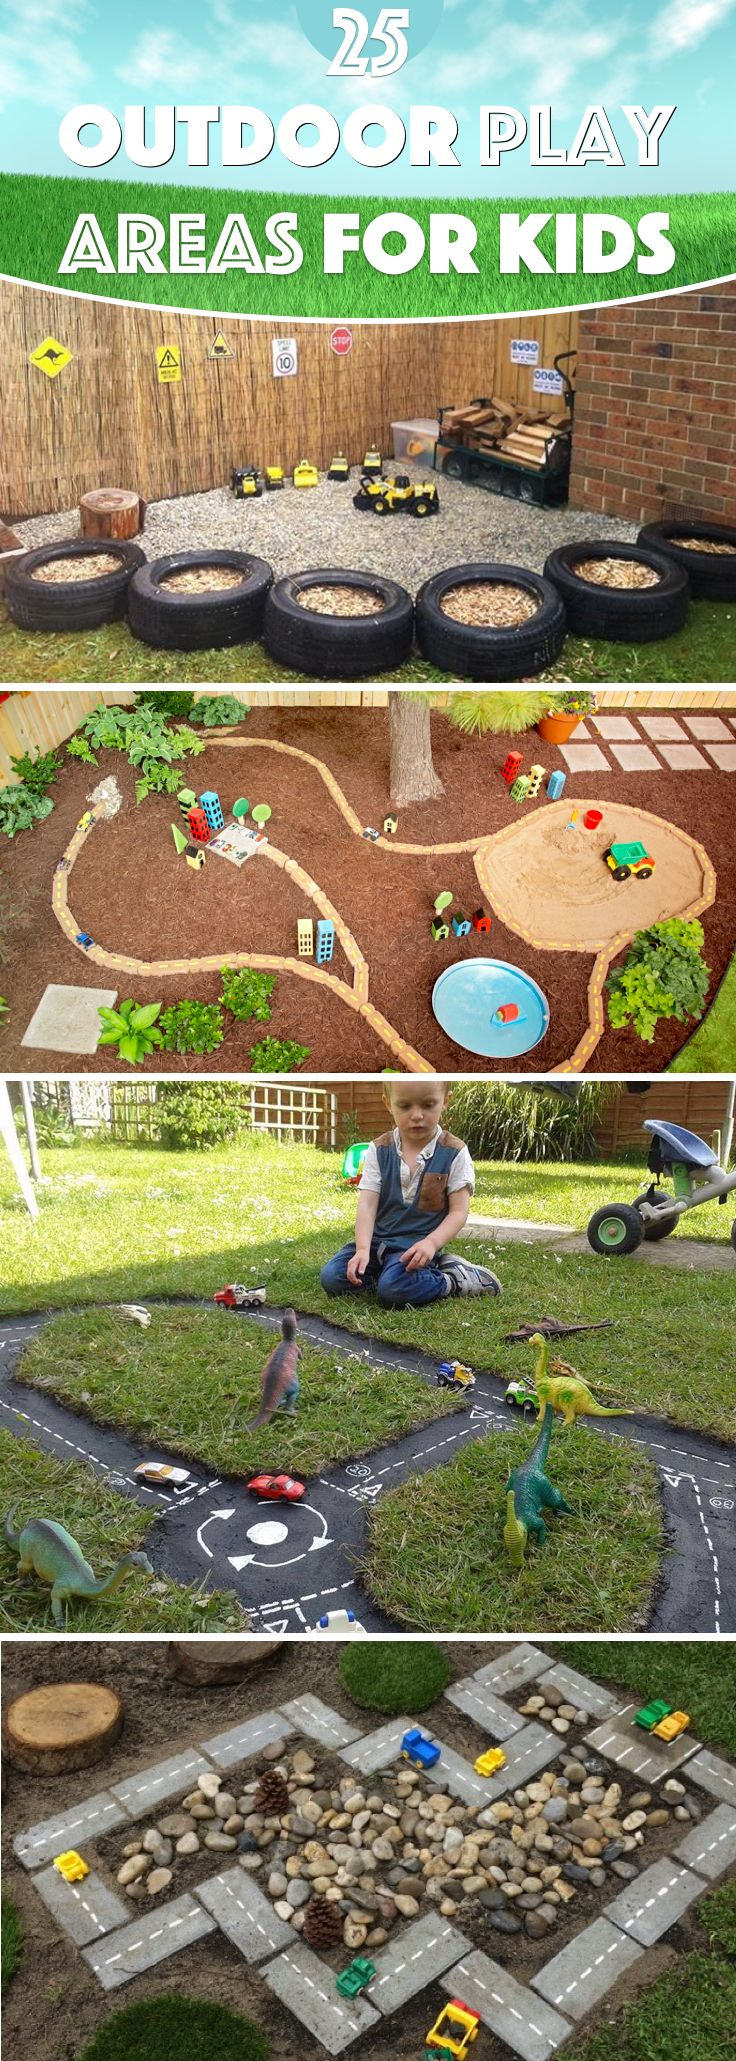 25 Outdoor Play Areas For Kids Transforming Regular Backyards Into Playtime Para...